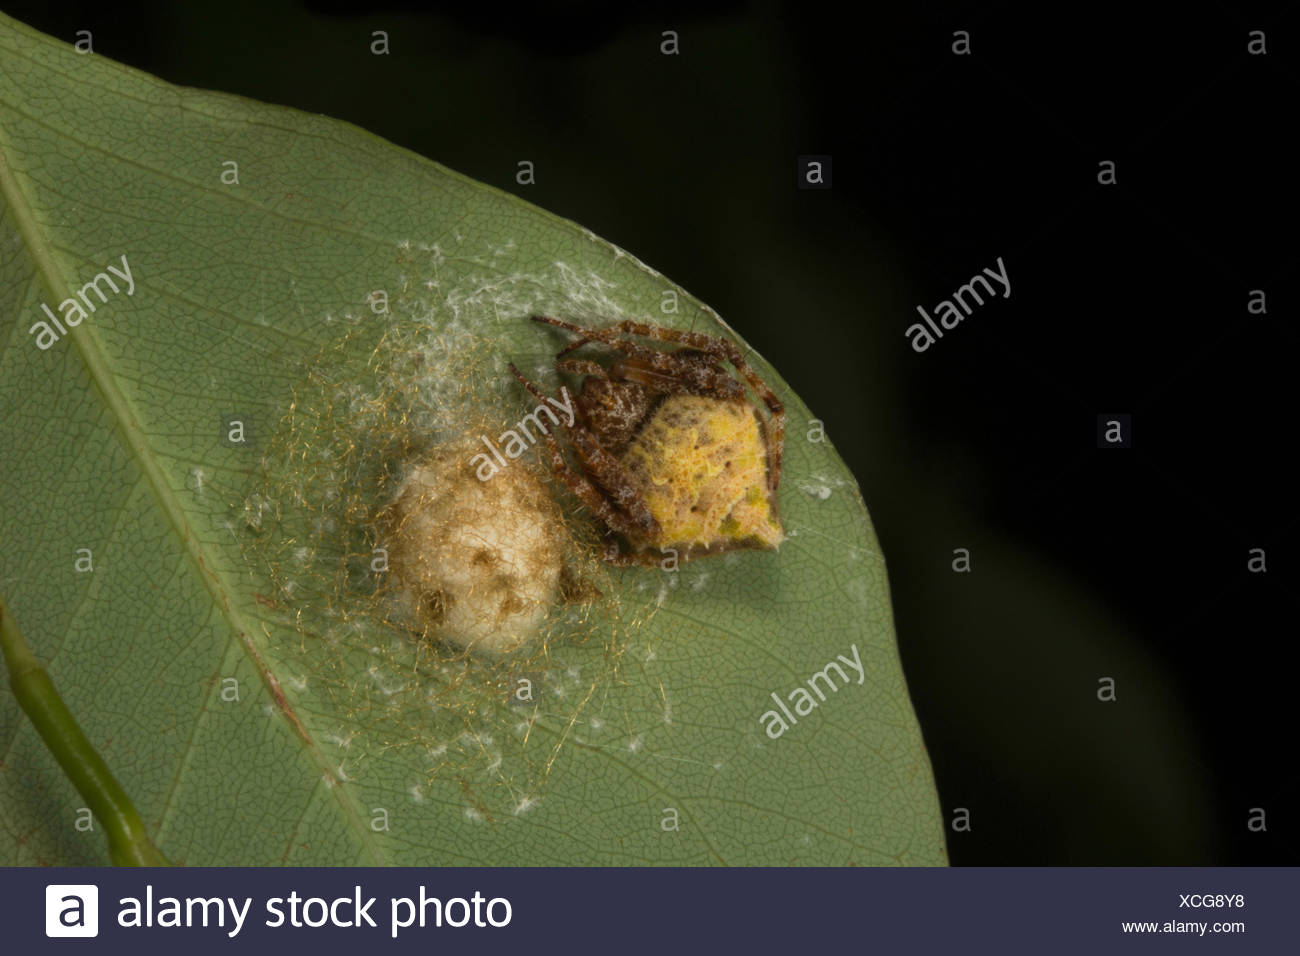 Araneids Stock Photos & Araneids Stock Images - Alamy